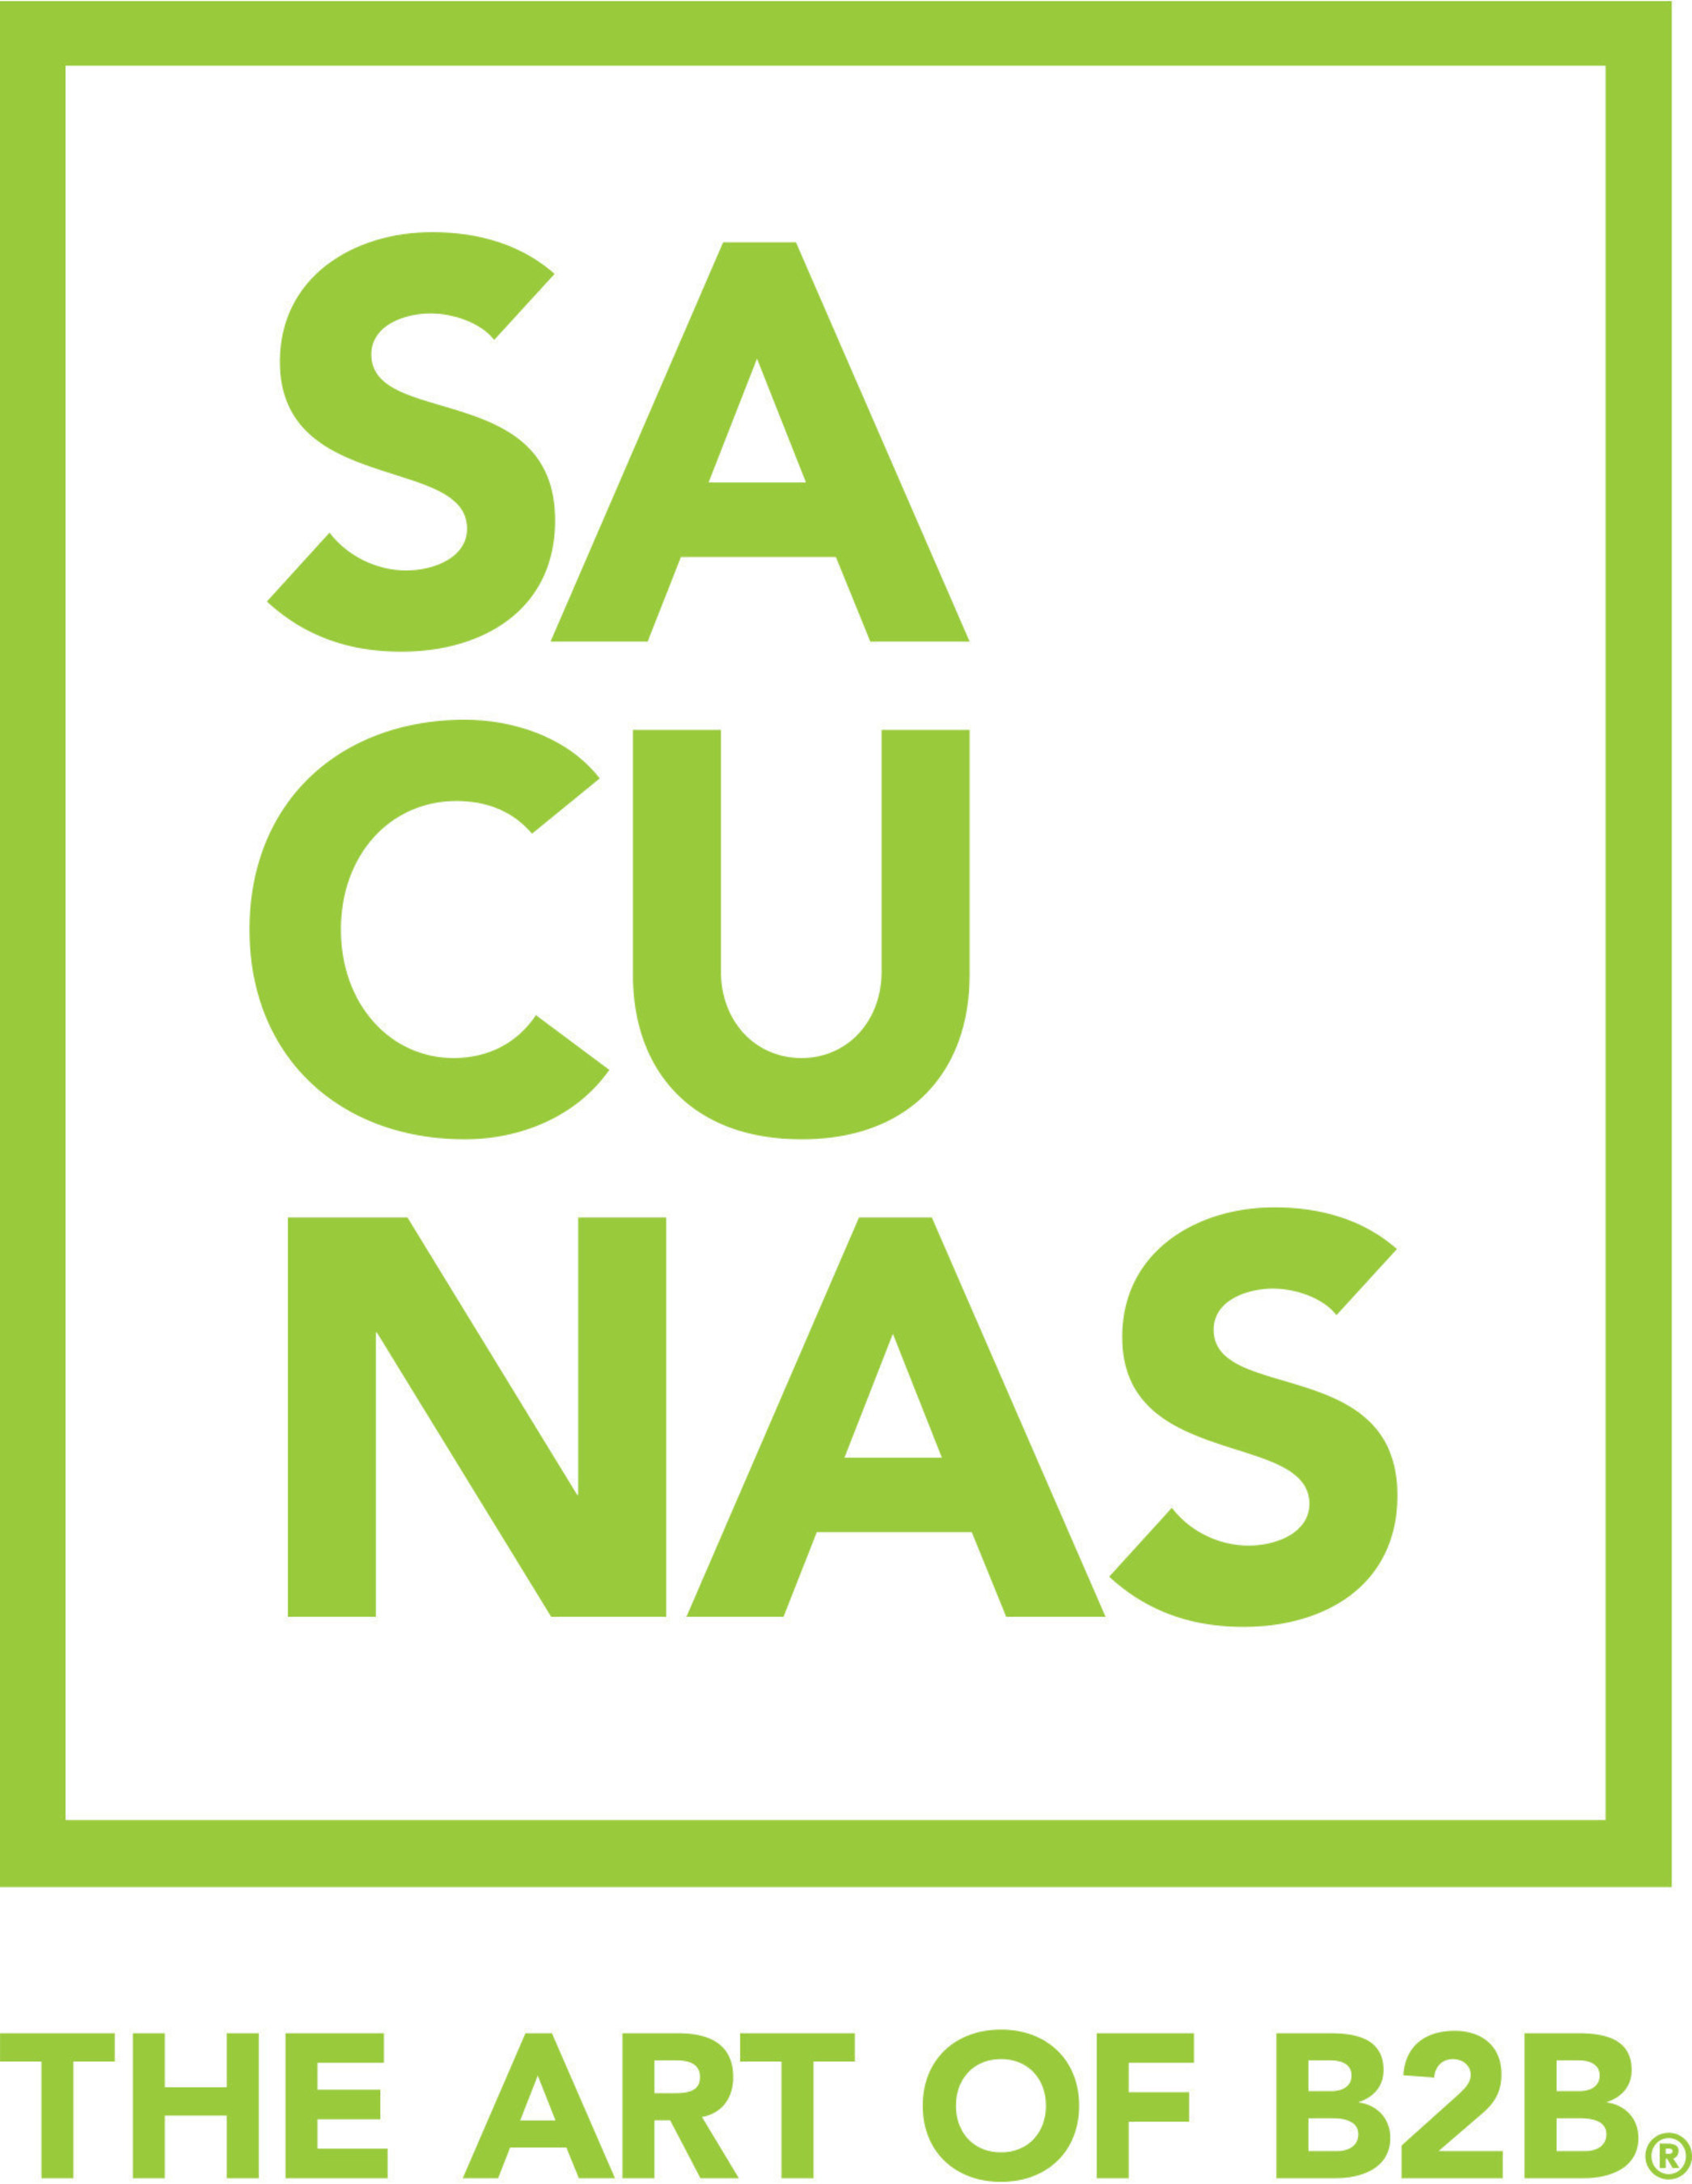 Sacunas helps the best B2B brands tell compelling stories and create exceptional experiences that motivate markets, customer teams and individual buyers.